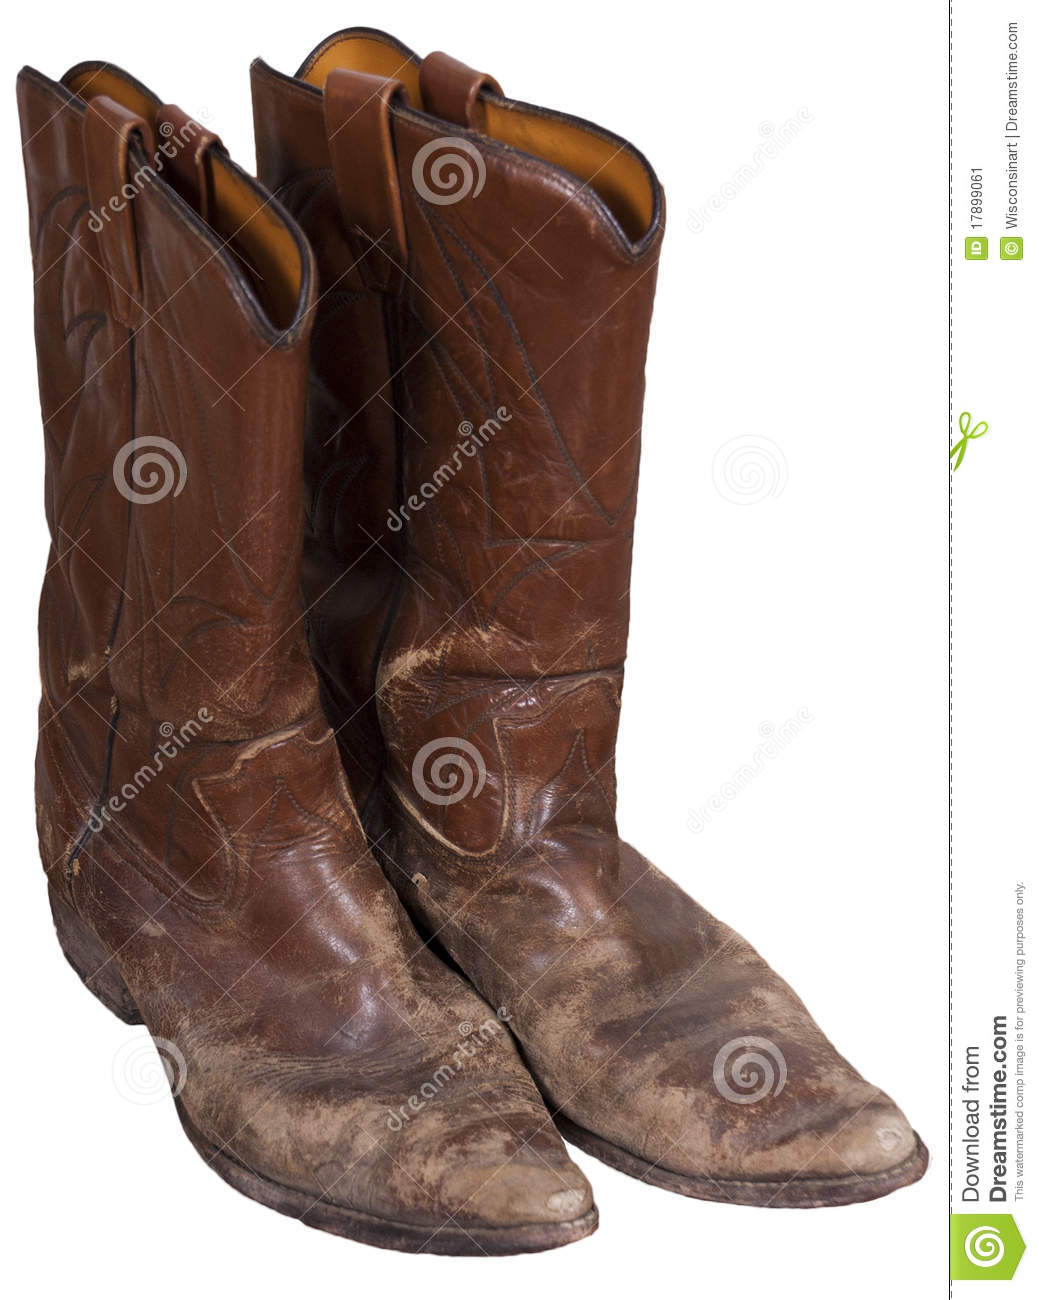 Western Cowboy Boots h2xmKp67